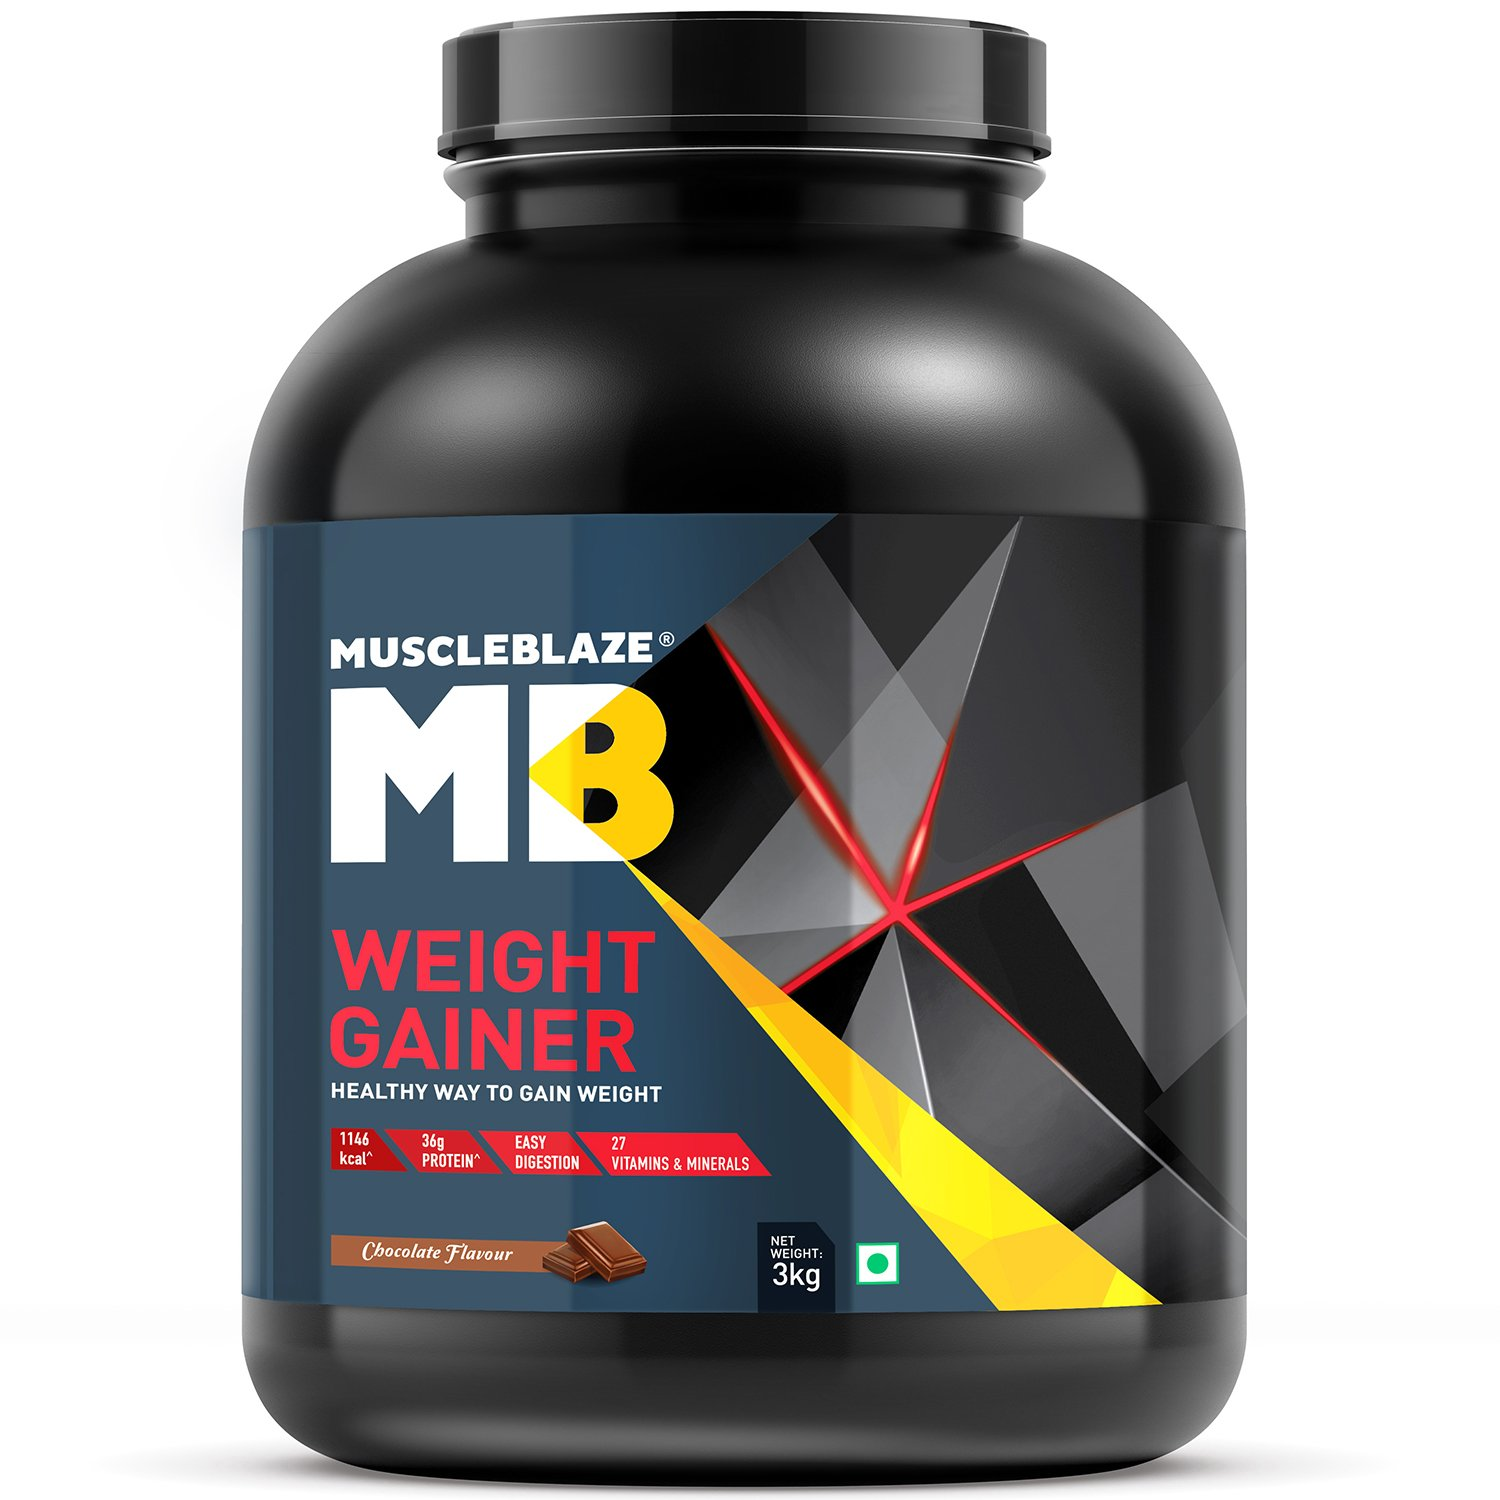 Muscleblaze Weight Gainer 3 Kg Chocolate Health Paket Hn Full Body Personal Care